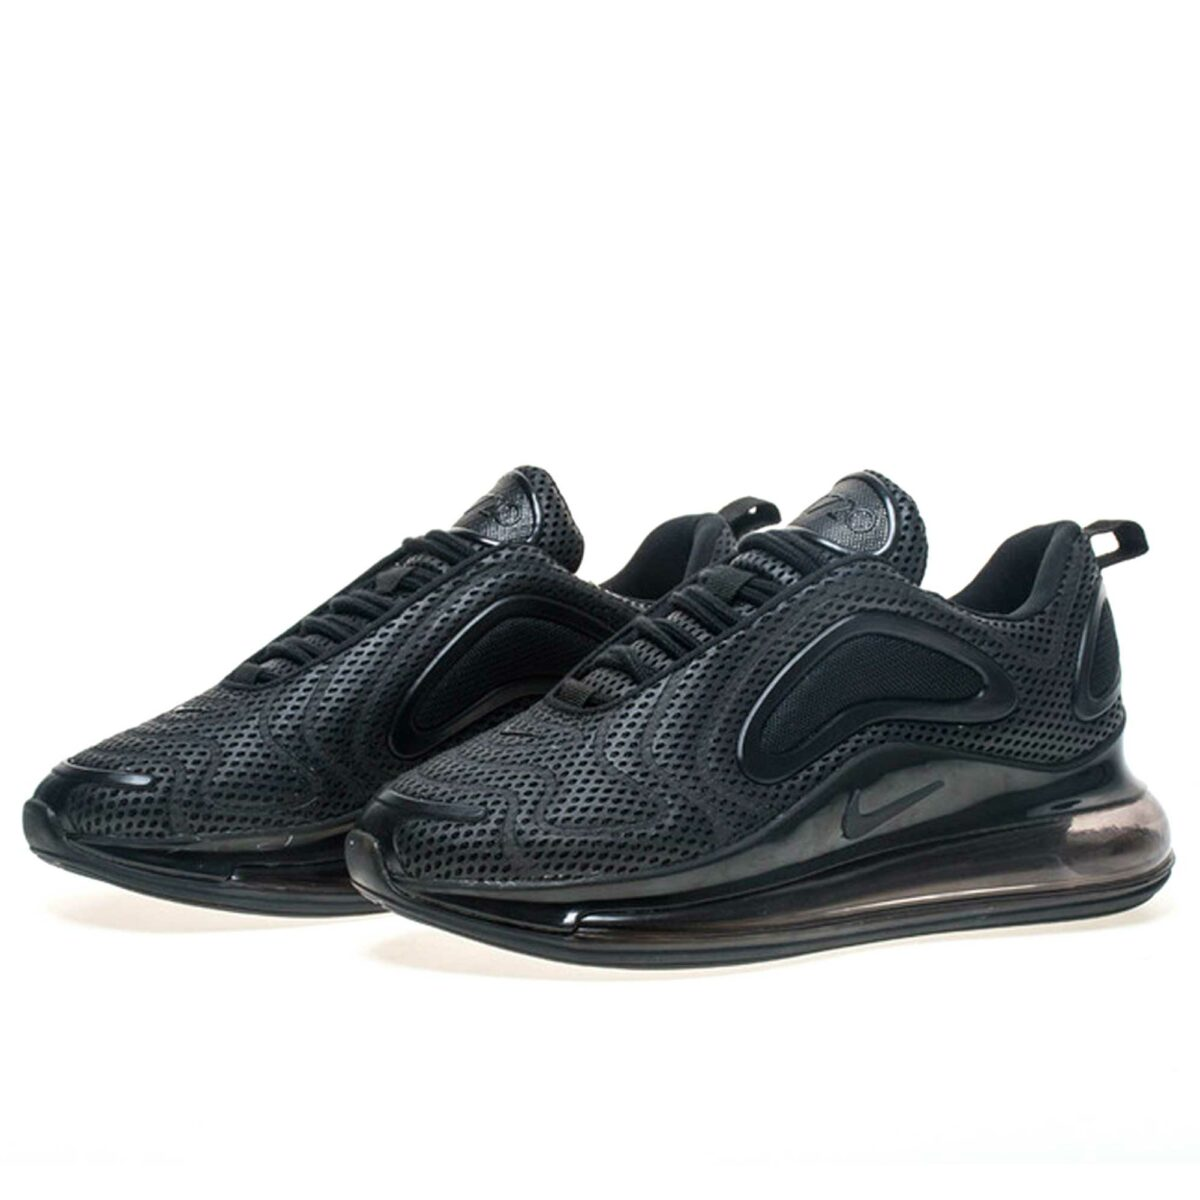 nike air max 720 all black ao2924_004 купить